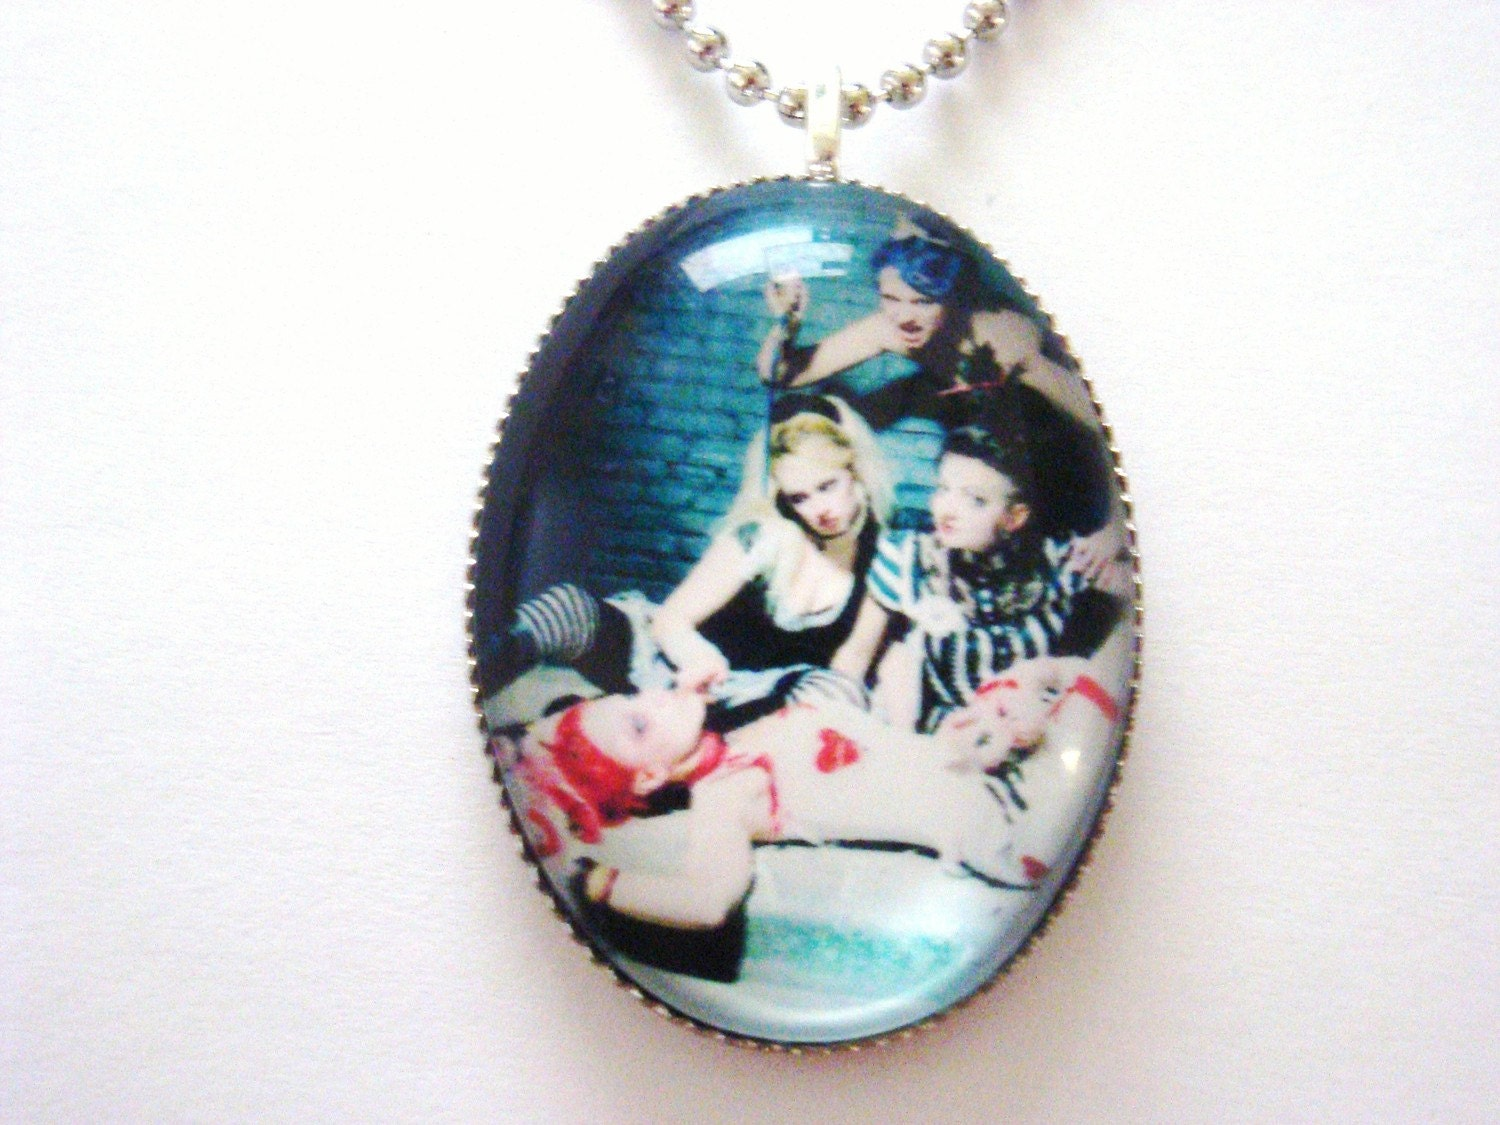 Emilie Autumn Bloody crumpets large bubble pendant necklace free worldwide